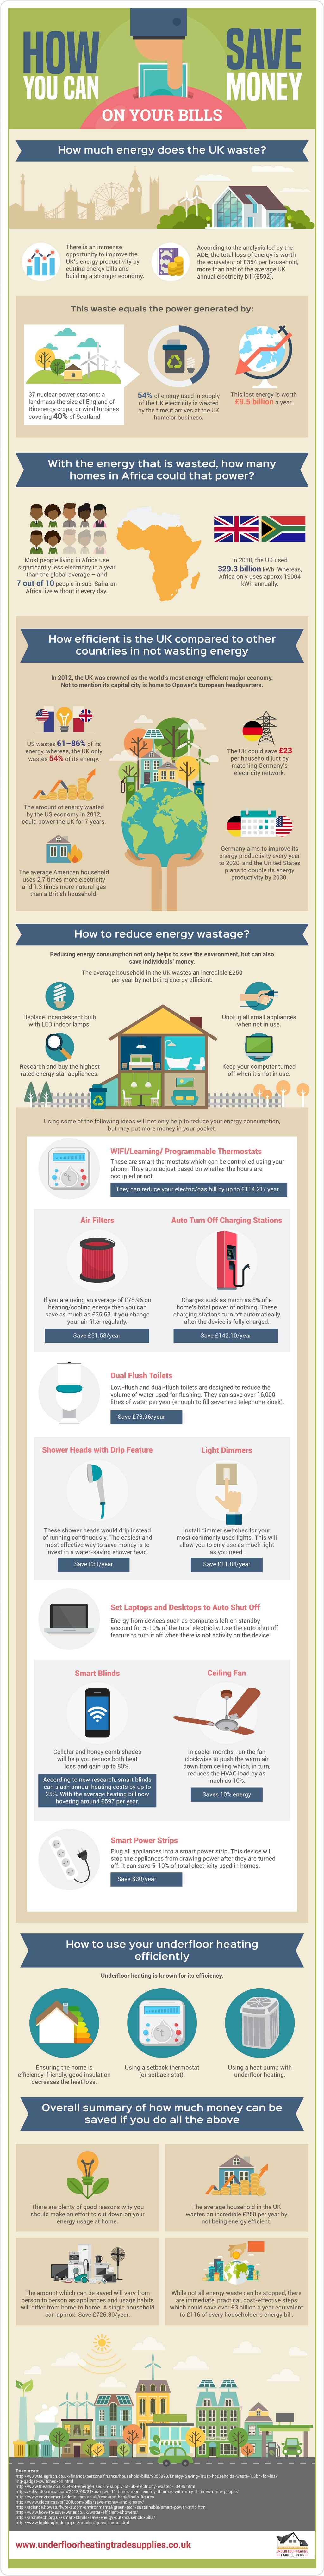 Energy Waste: How To Save Money On Bills